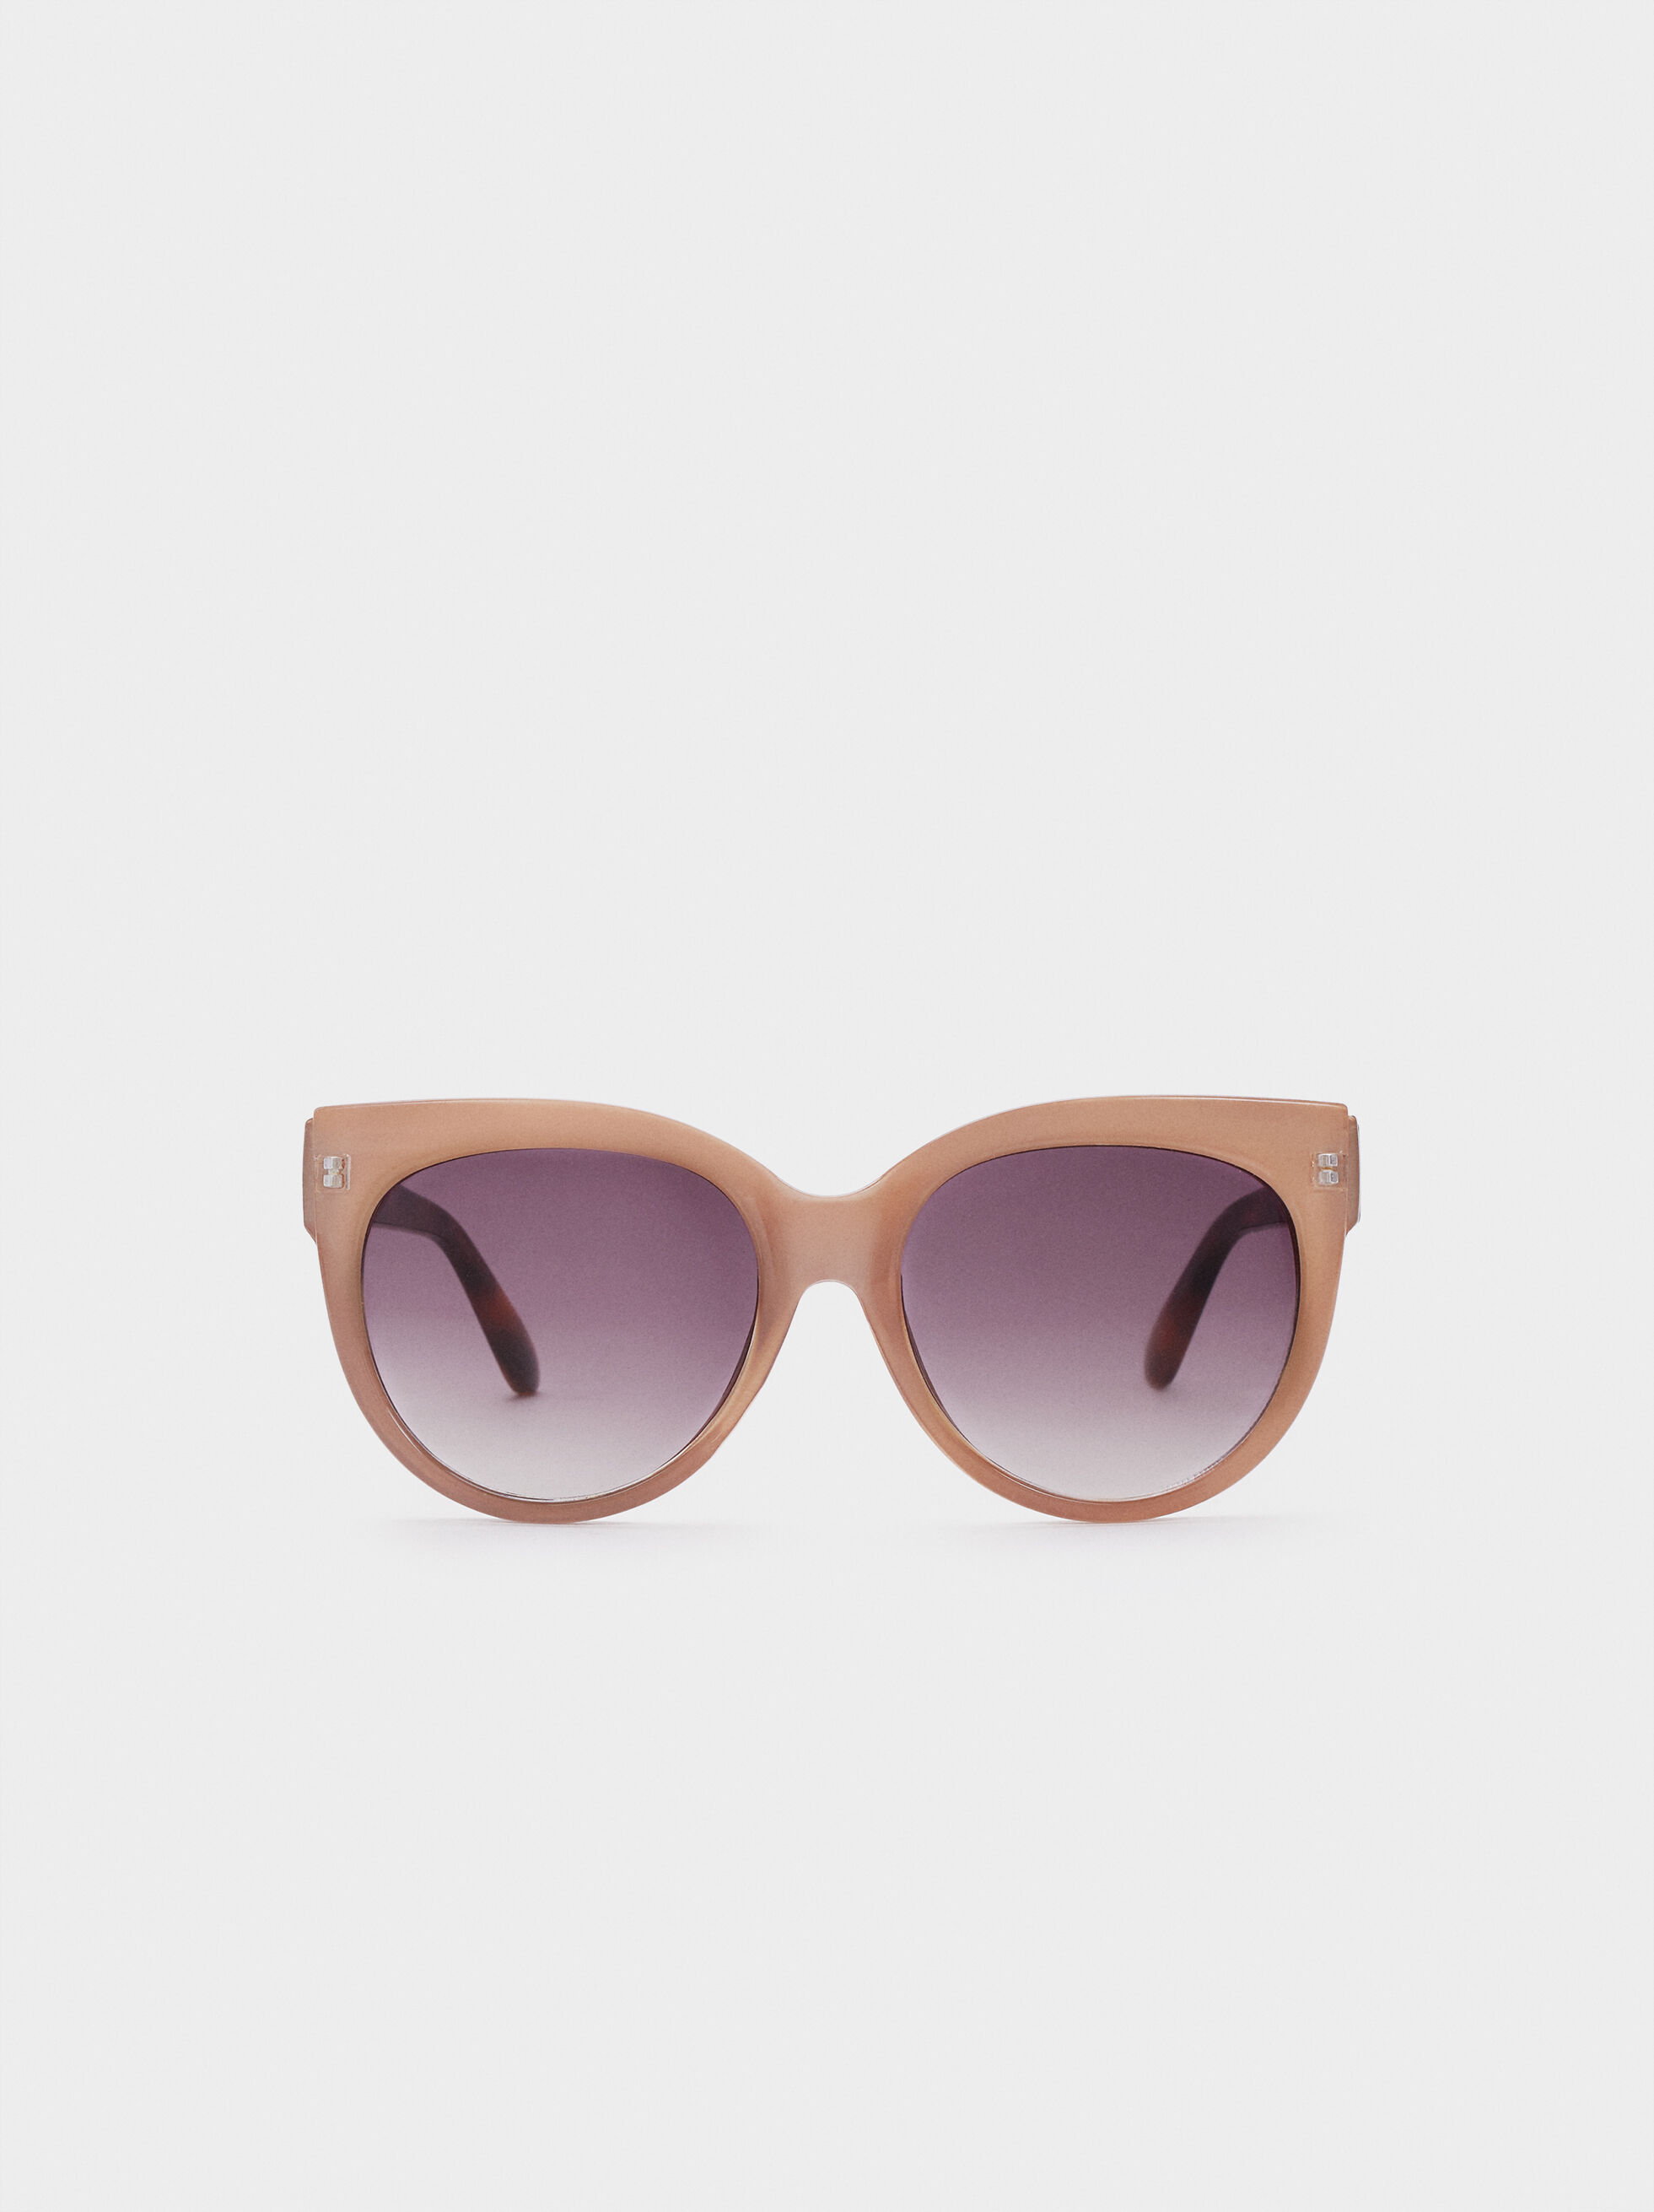 Cateye Sunglasses, Pink, hi-res